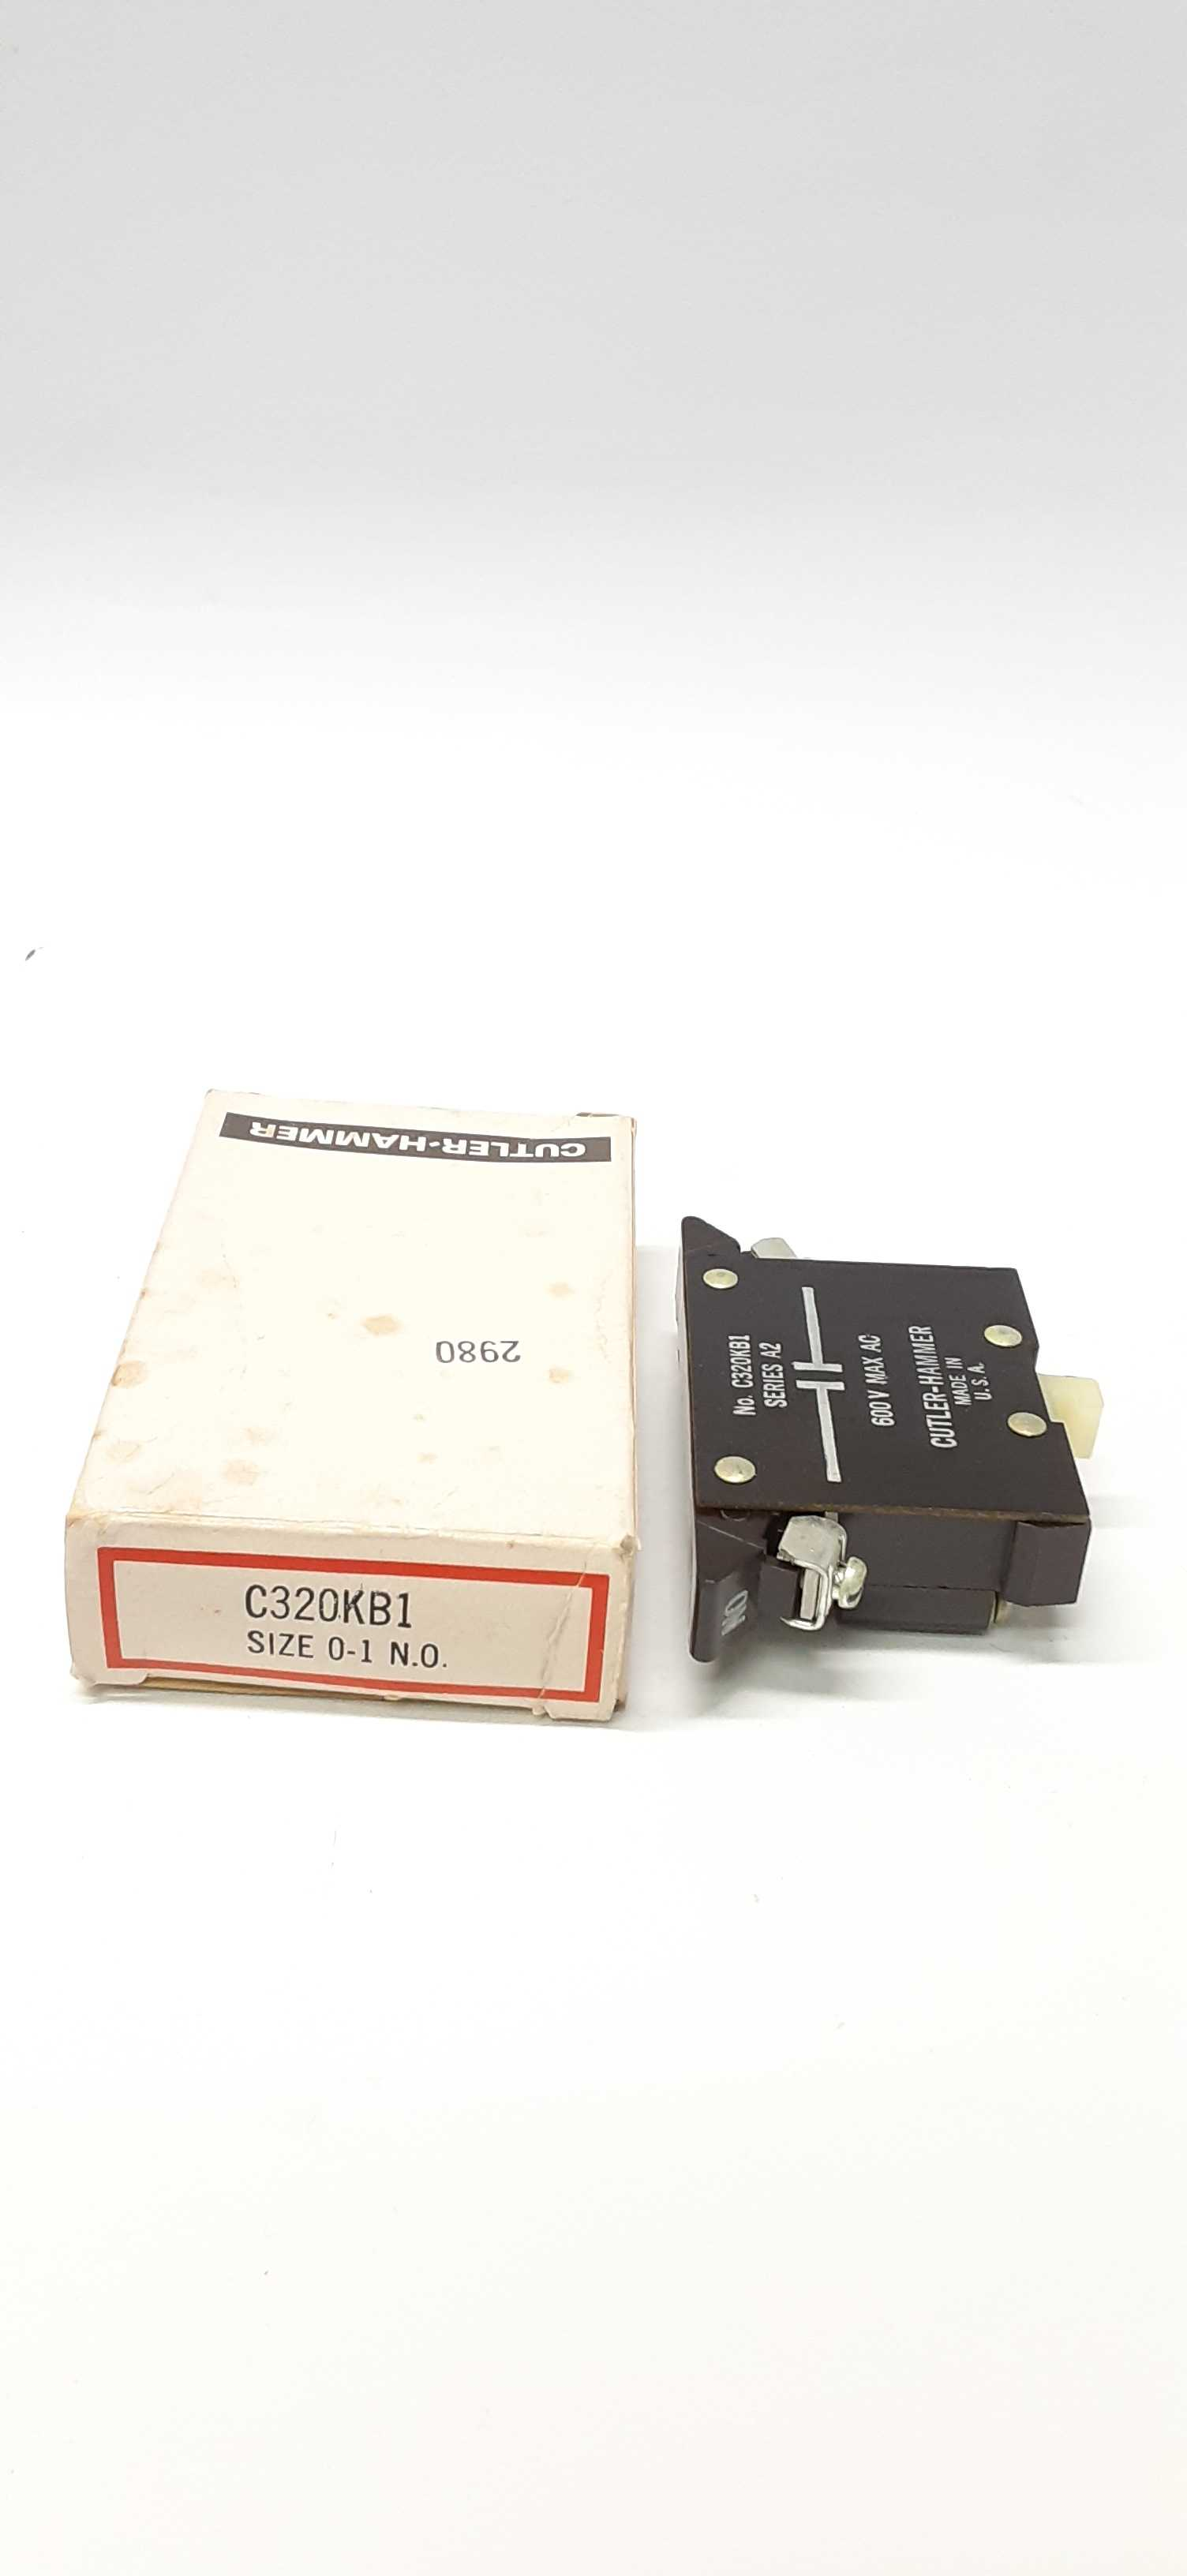 Cutler-Hammer C320KB1 ser.A2 Auxiliary Contact 600V